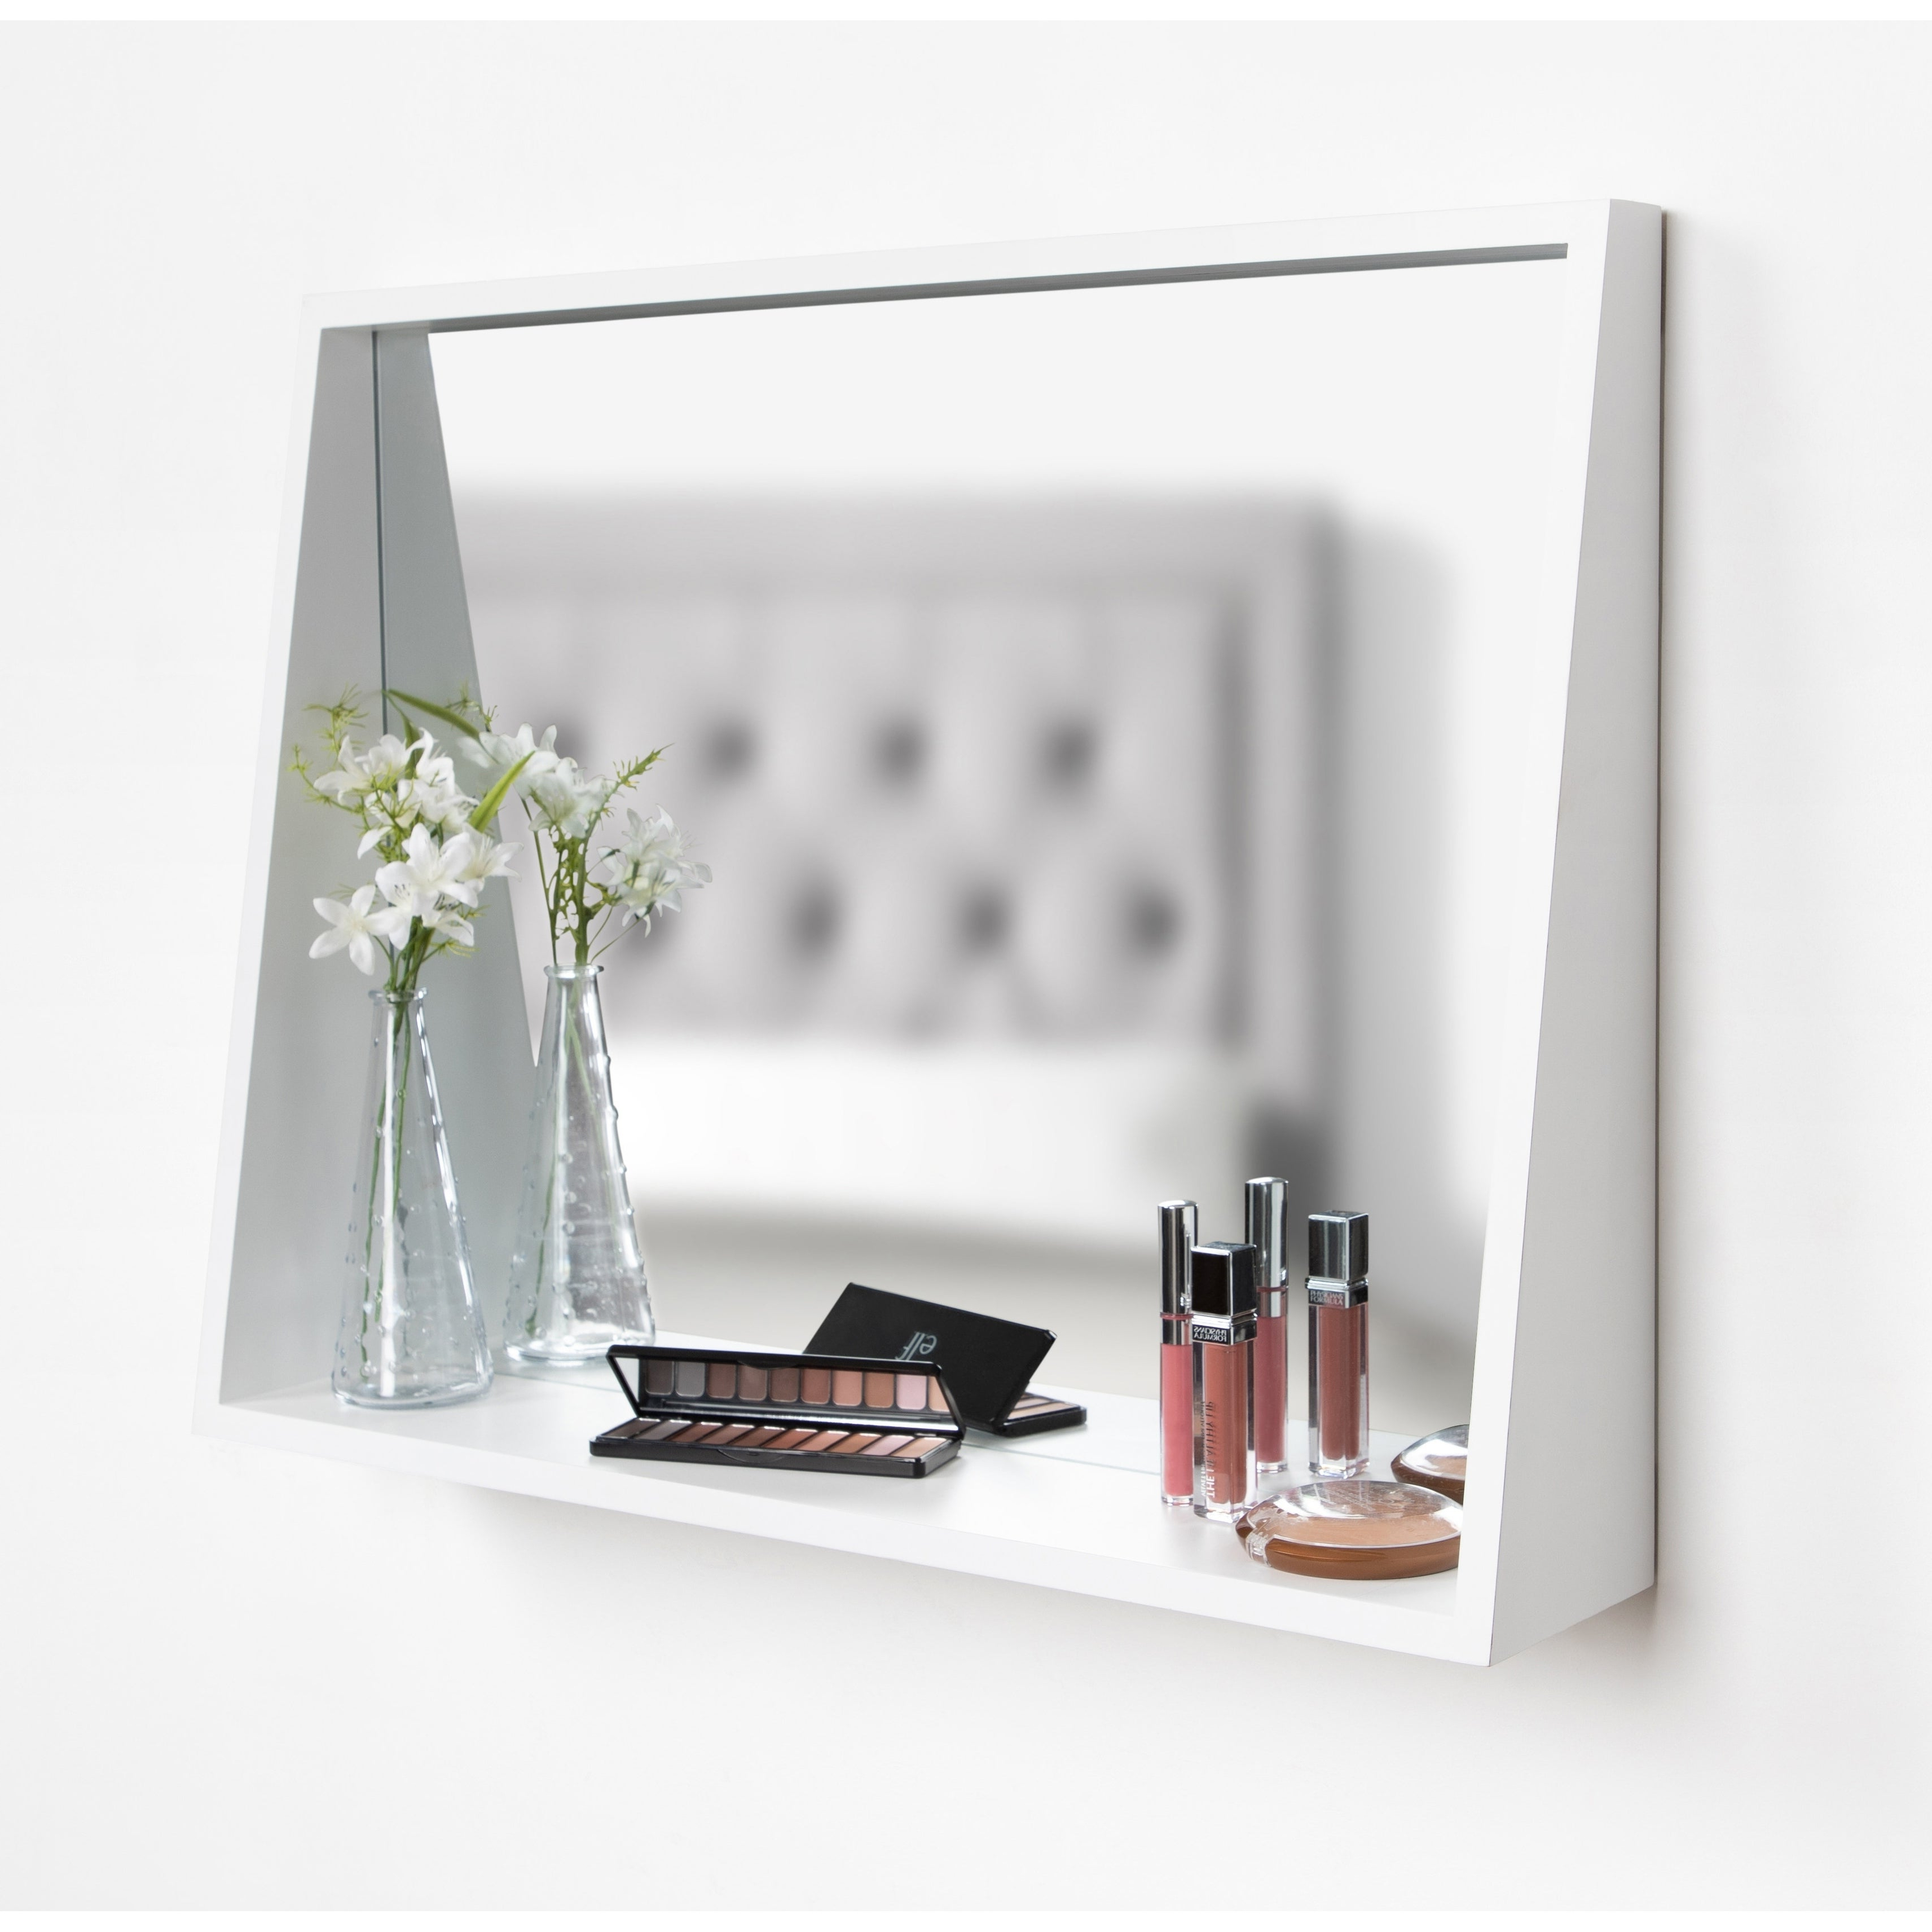 Kate And Laurel Jarden Recessed Wall Mirror With Shelf – White – 20X26 With Current Wall Mirrors With Shelf (Gallery 20 of 20)